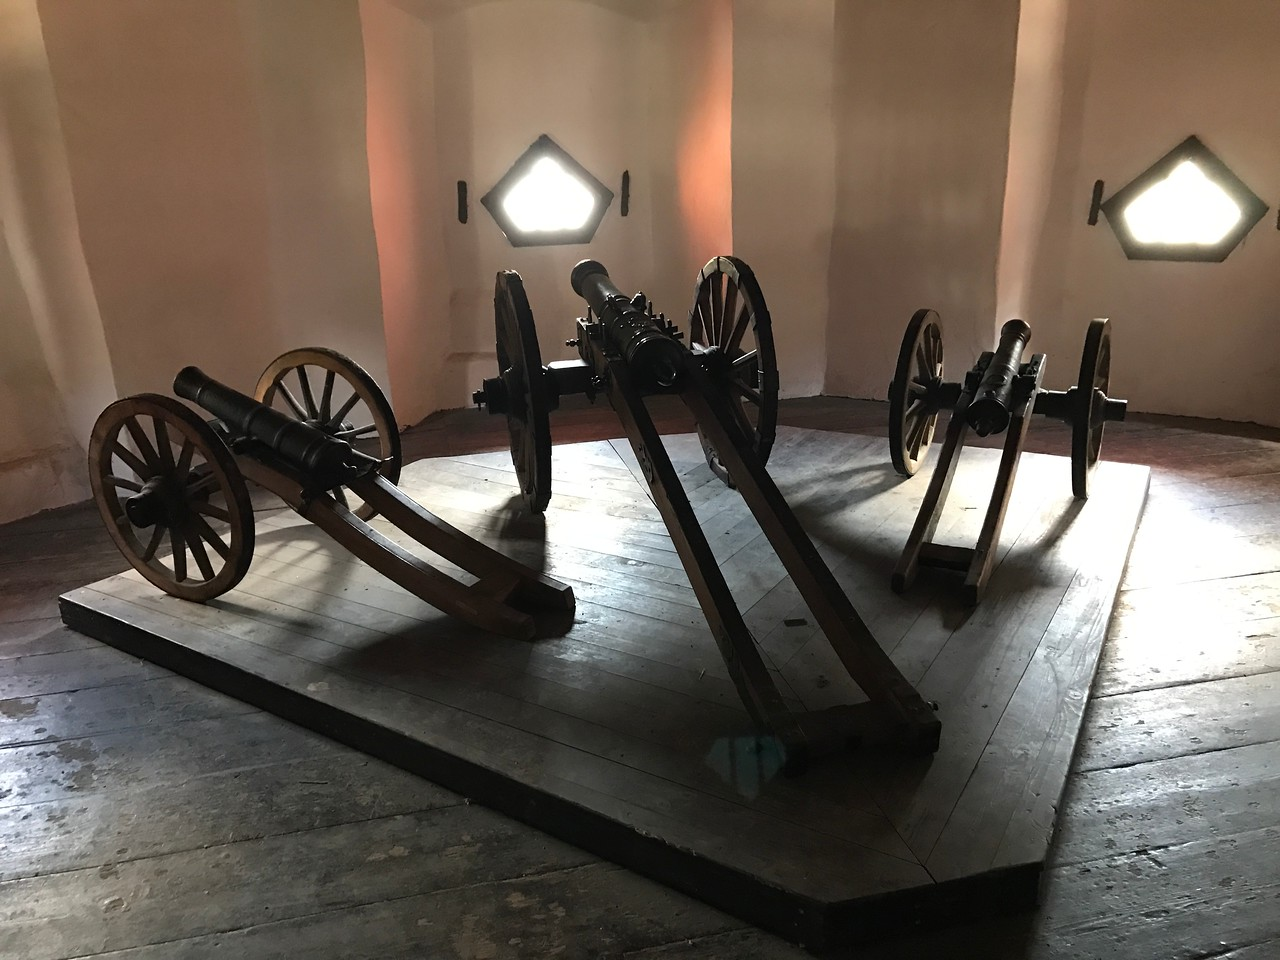 A display of some of the canons used in Pfalzgrafenstein Castle to force ships to stop and pay tolls.